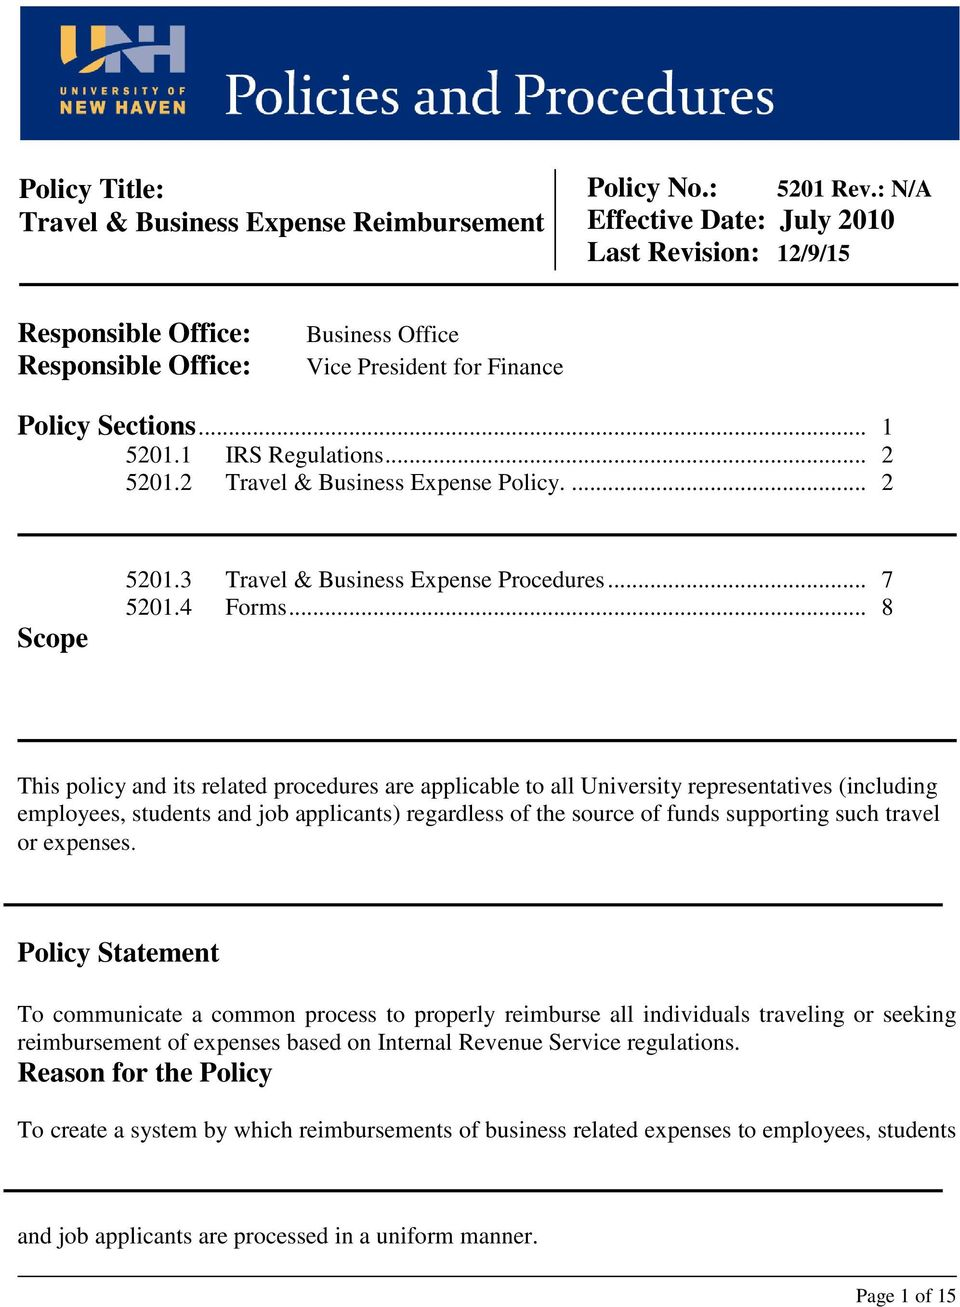 3 Travel & Business Expense Procedures... 7 5201.4 Forms.